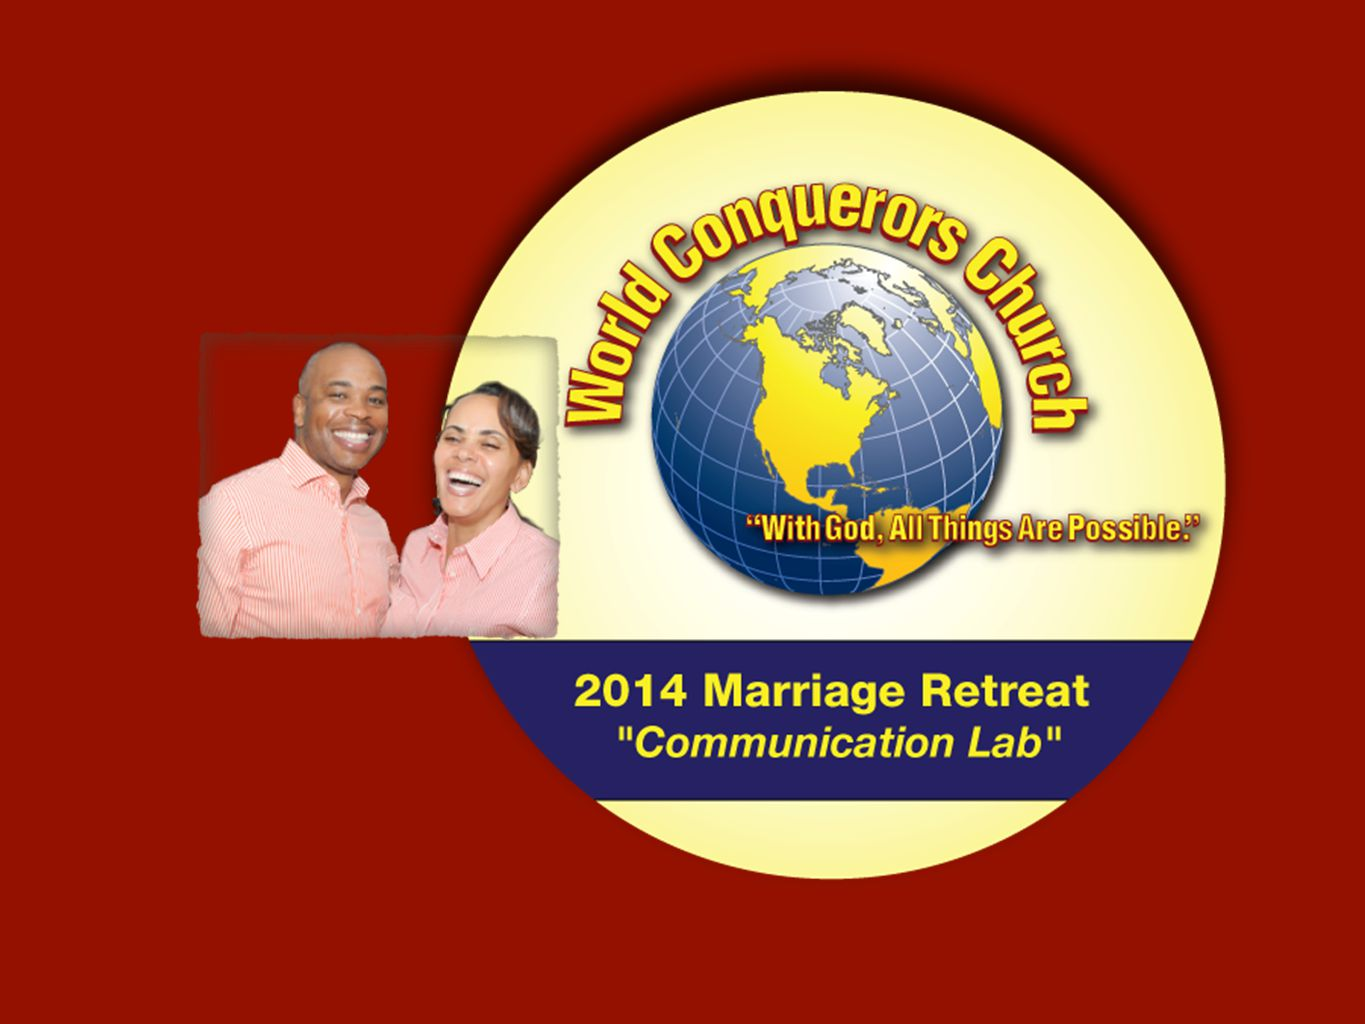 Why did you come to this marriage retreat.What do you expect to get out of this retreat.